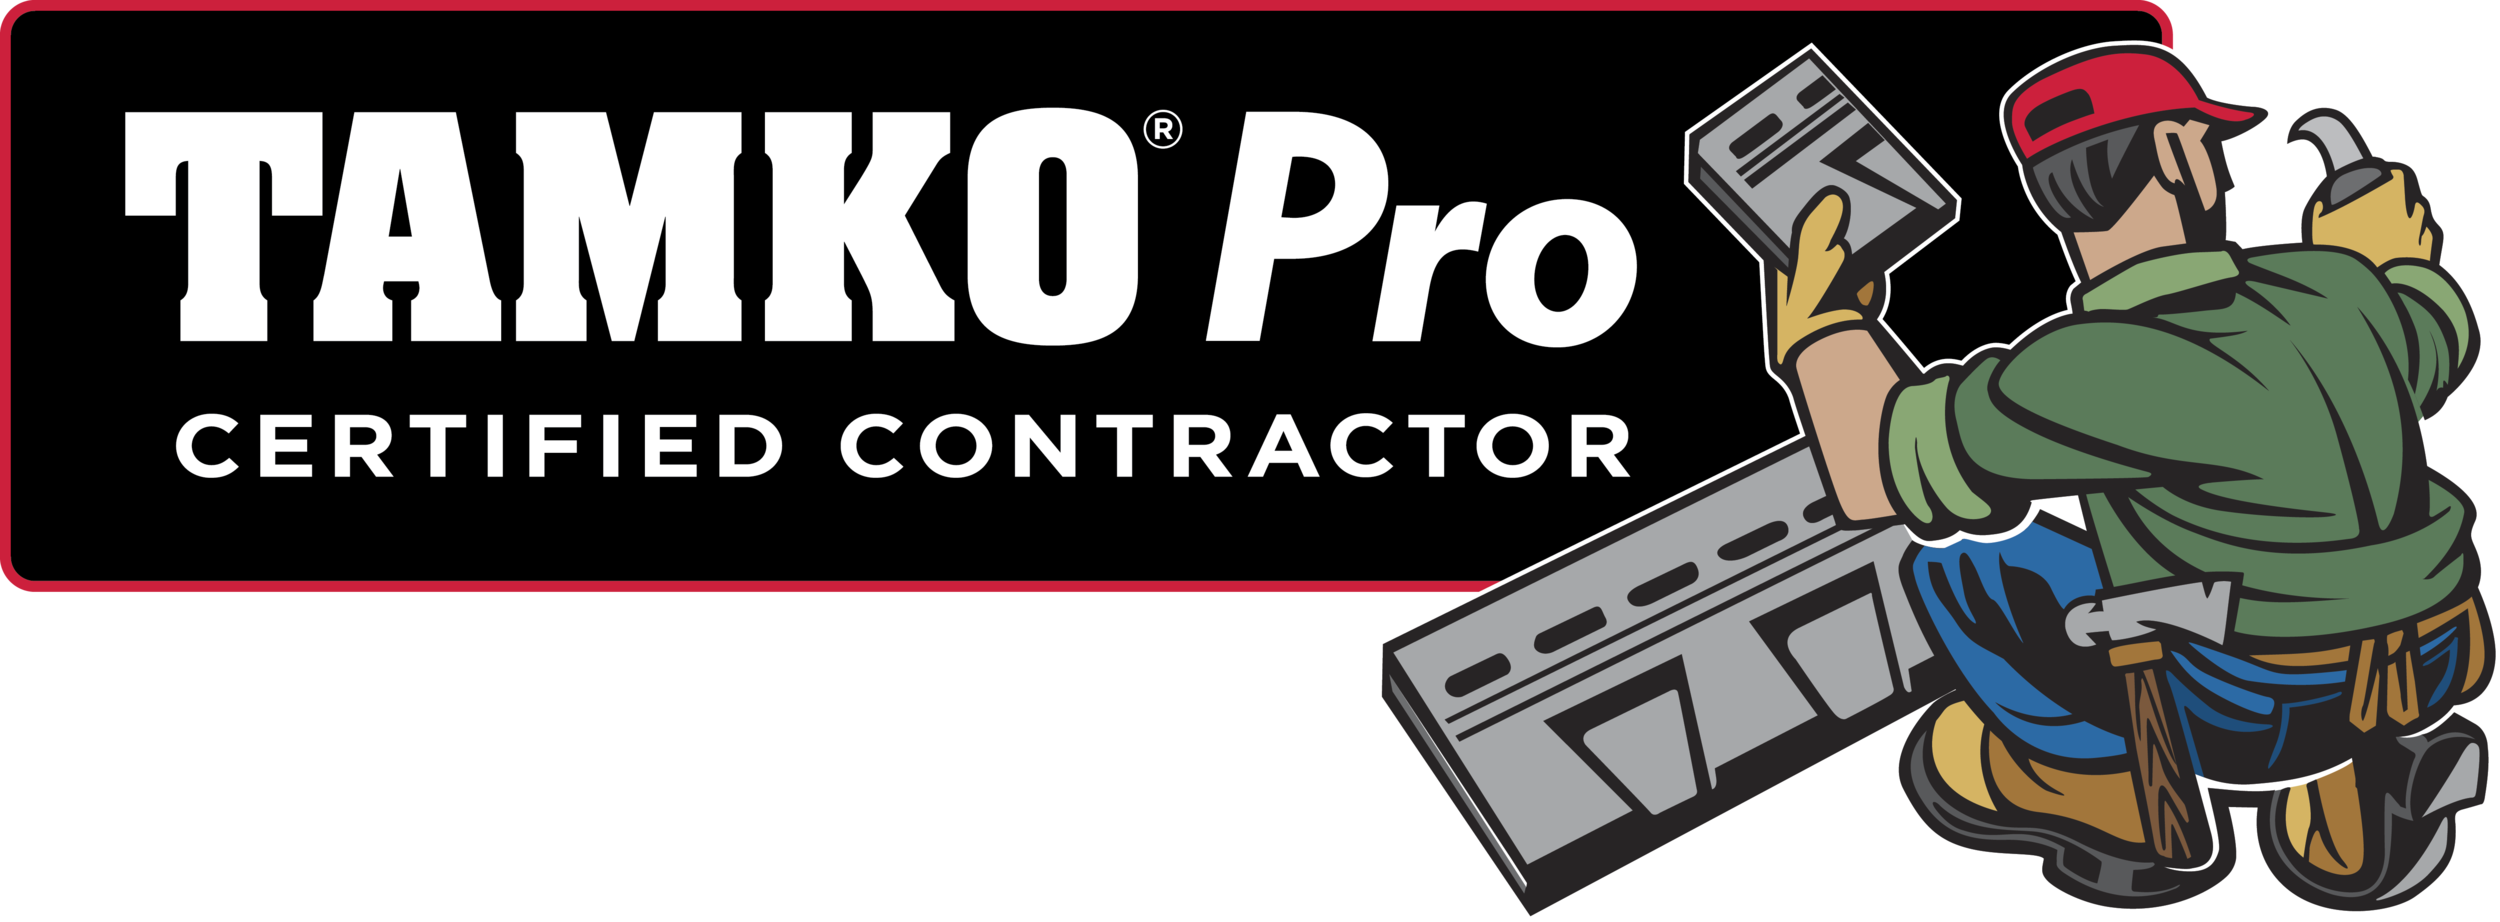 TAMKO Pro Certified Contractor (logo) color.png